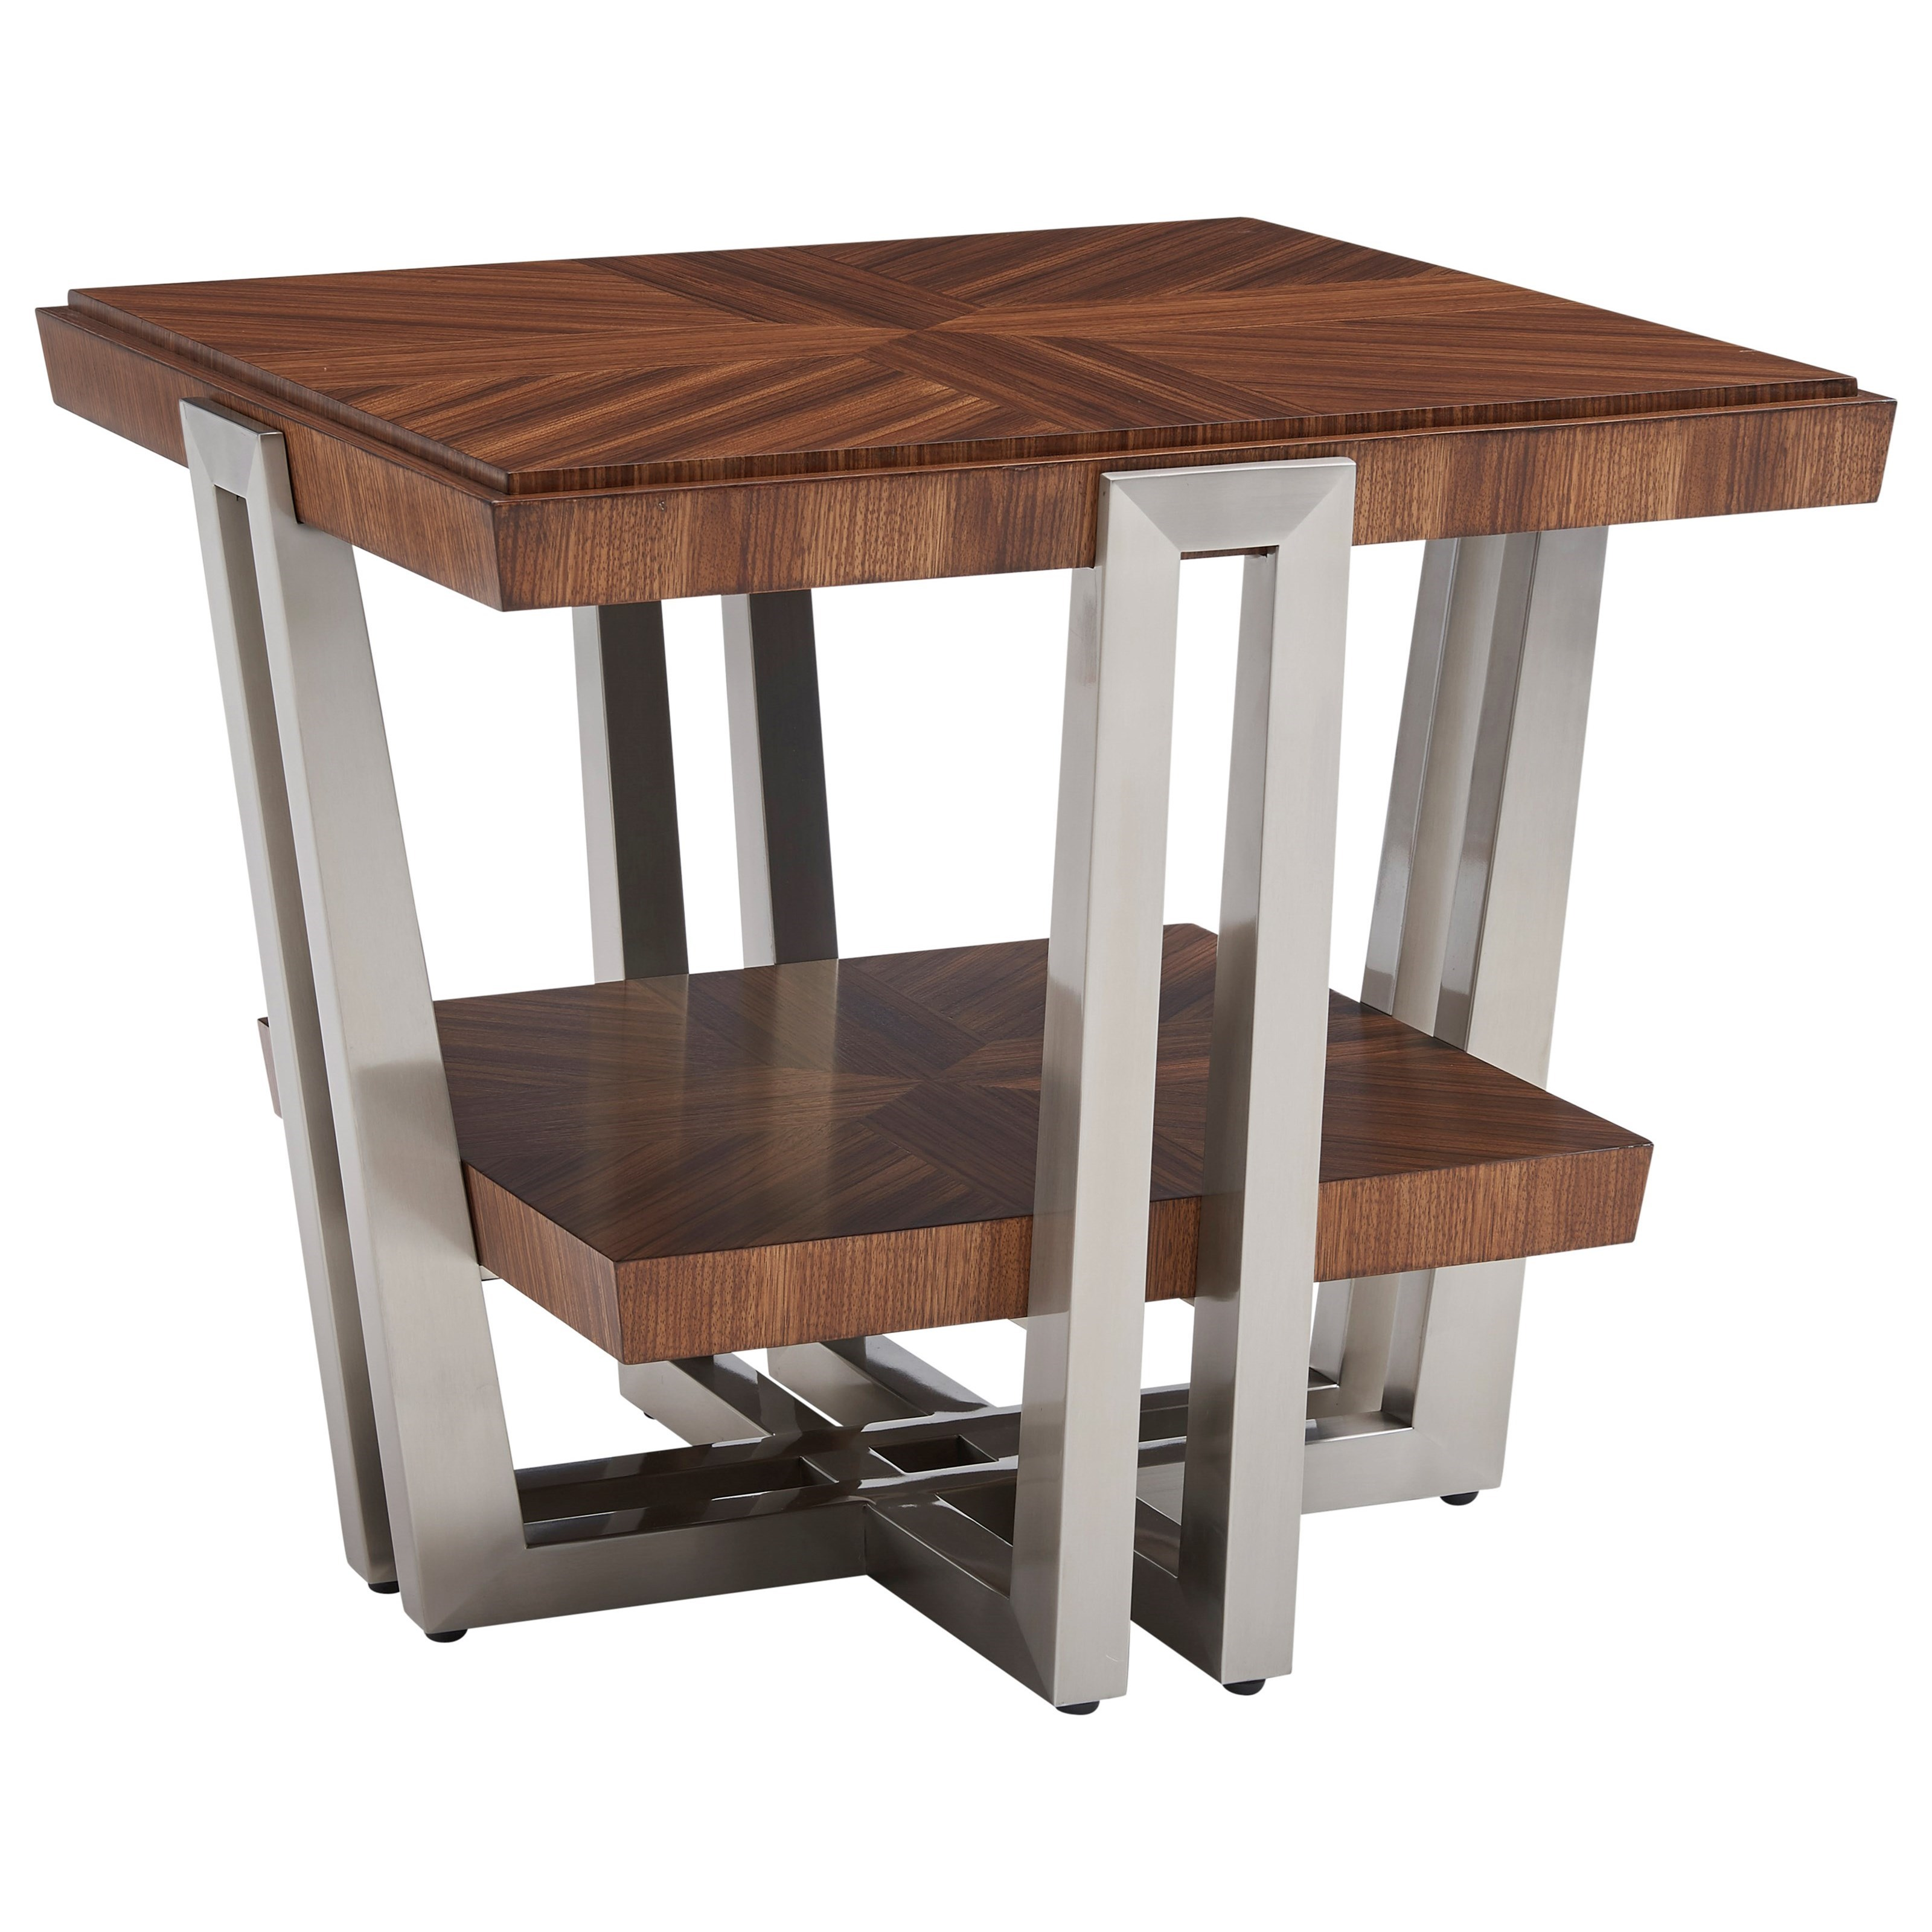 Kitano Gianni Square End Table by Lexington at Baer's Furniture